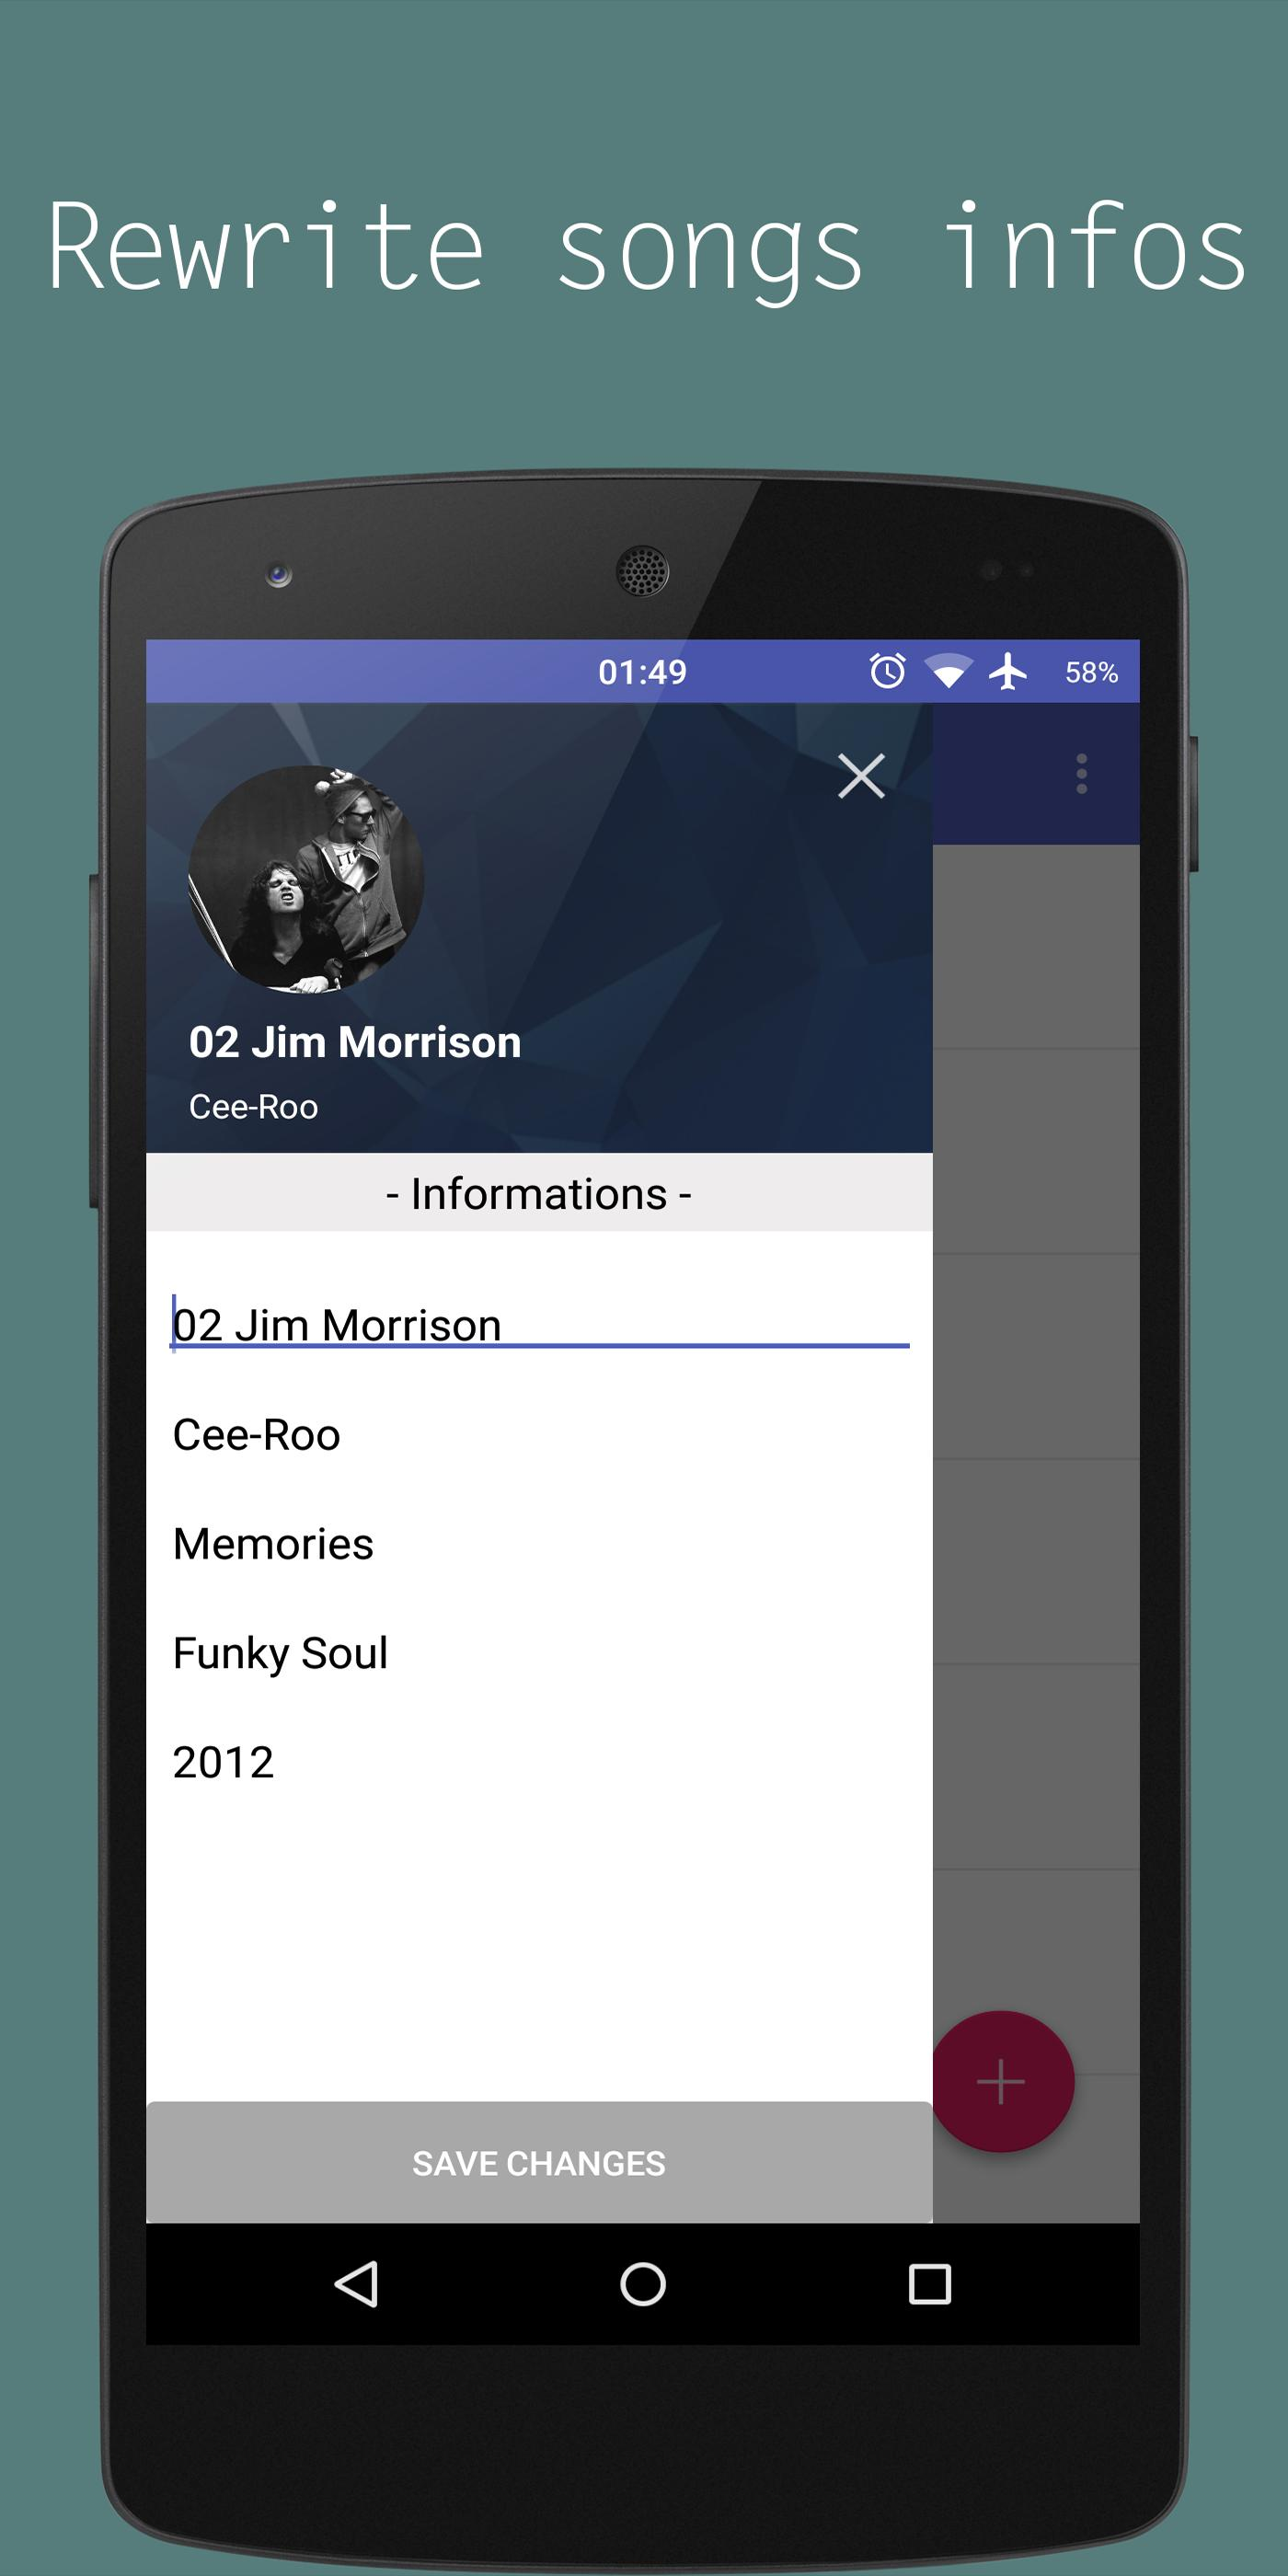 5 Offline Music Players For Android To Listen To Songs Without Internet | TechUntold